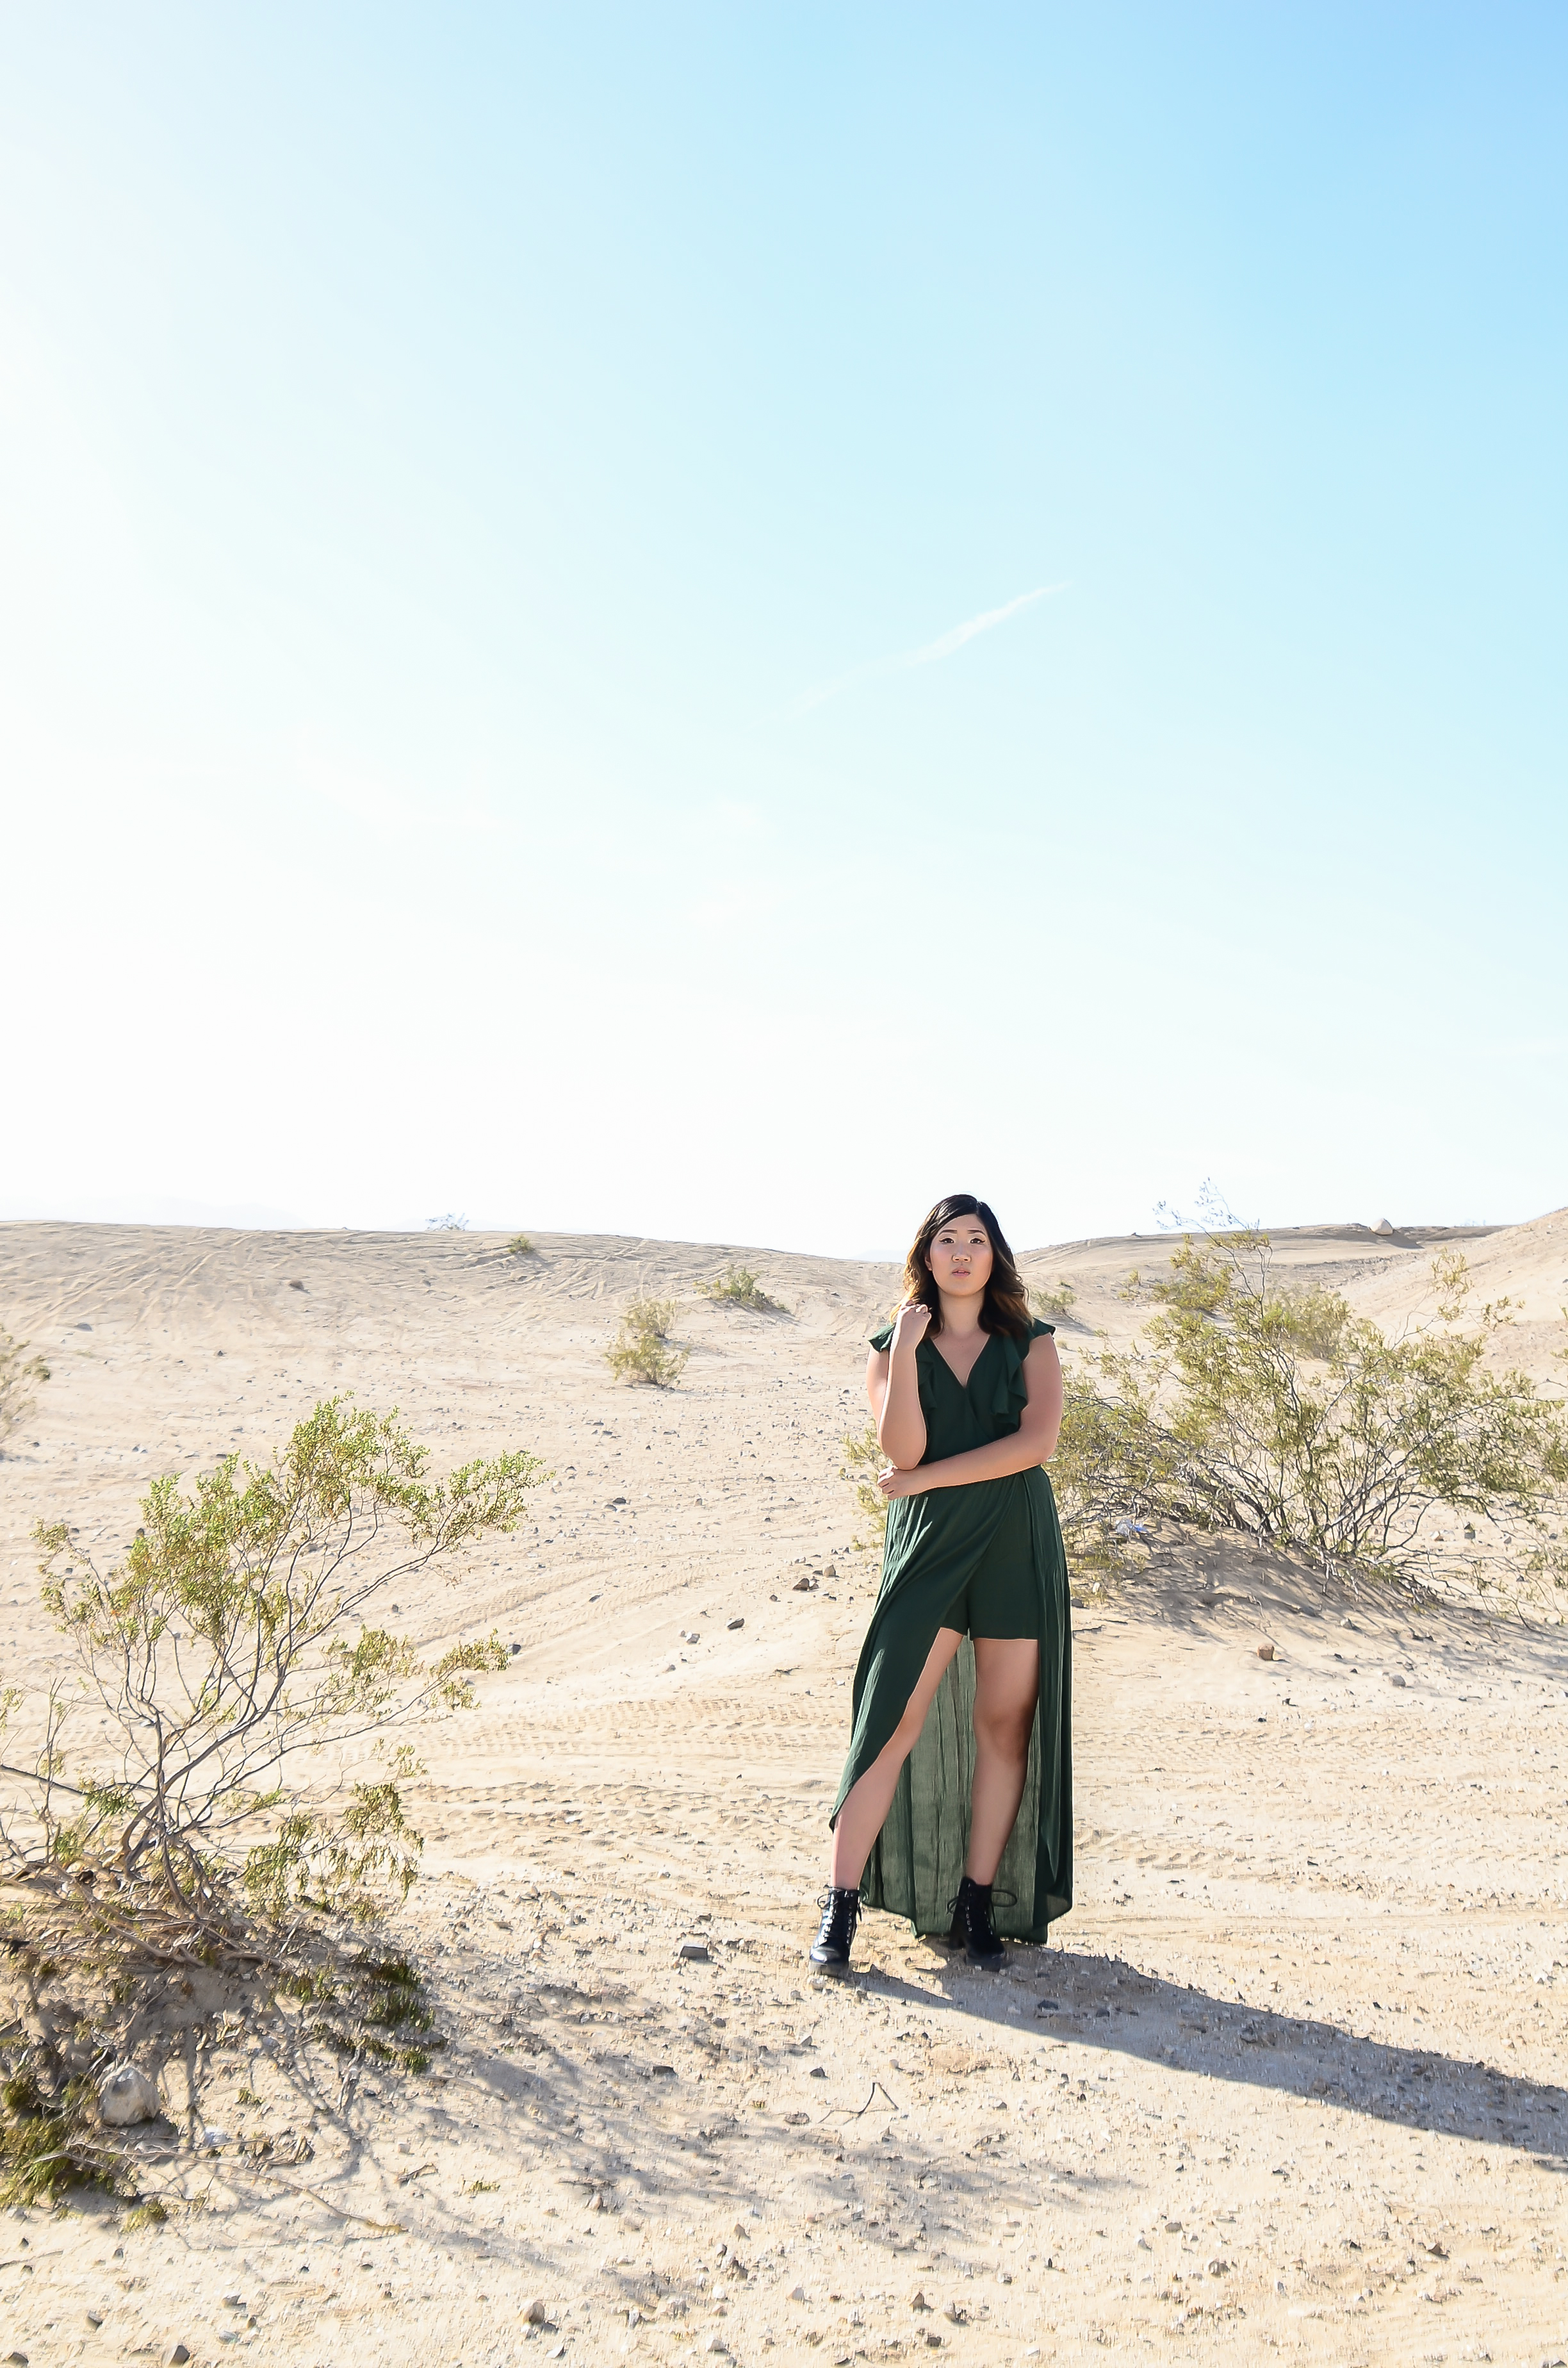 DesertGreenDress-1.jpg